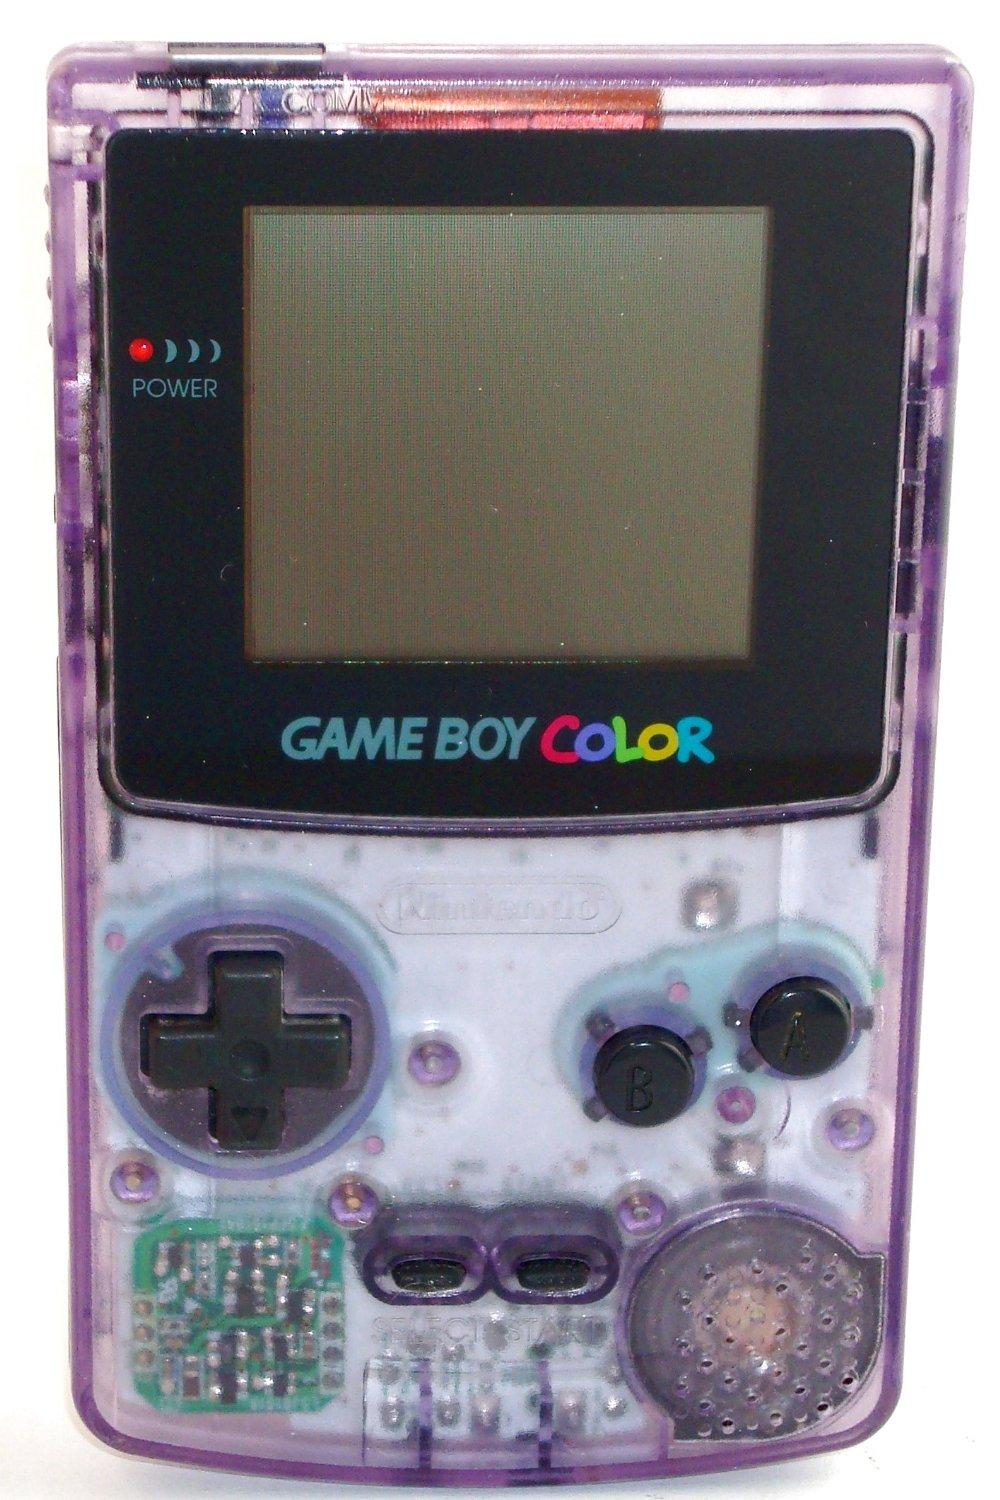 GBC: CONSOLE - GAMEBOY COLOR - ATOMIC PURPLE (W/ COVER) (USED)